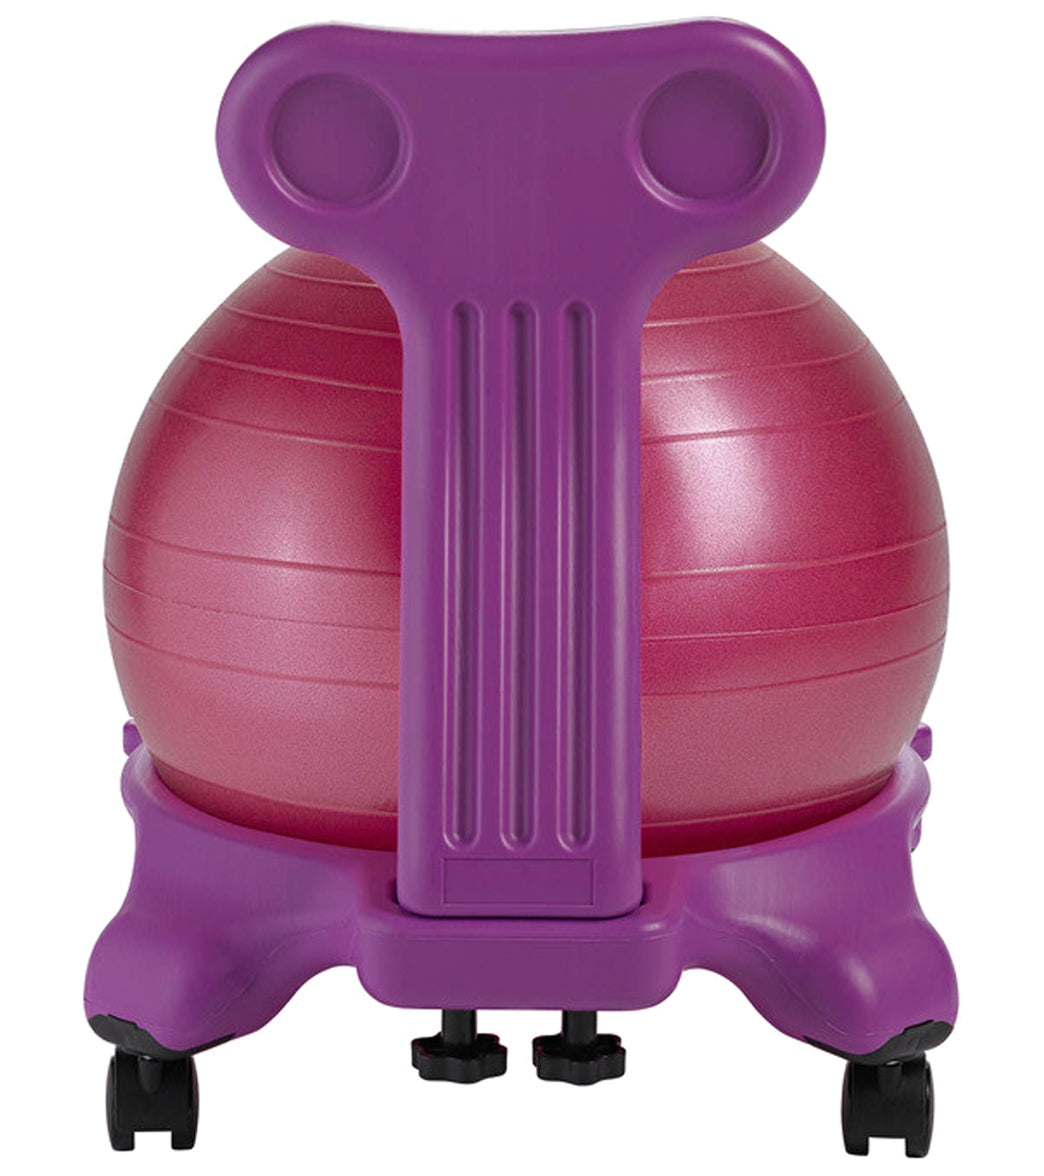 Excellent Gaiam Kids Yoga Balance Ball Chair Caraccident5 Cool Chair Designs And Ideas Caraccident5Info